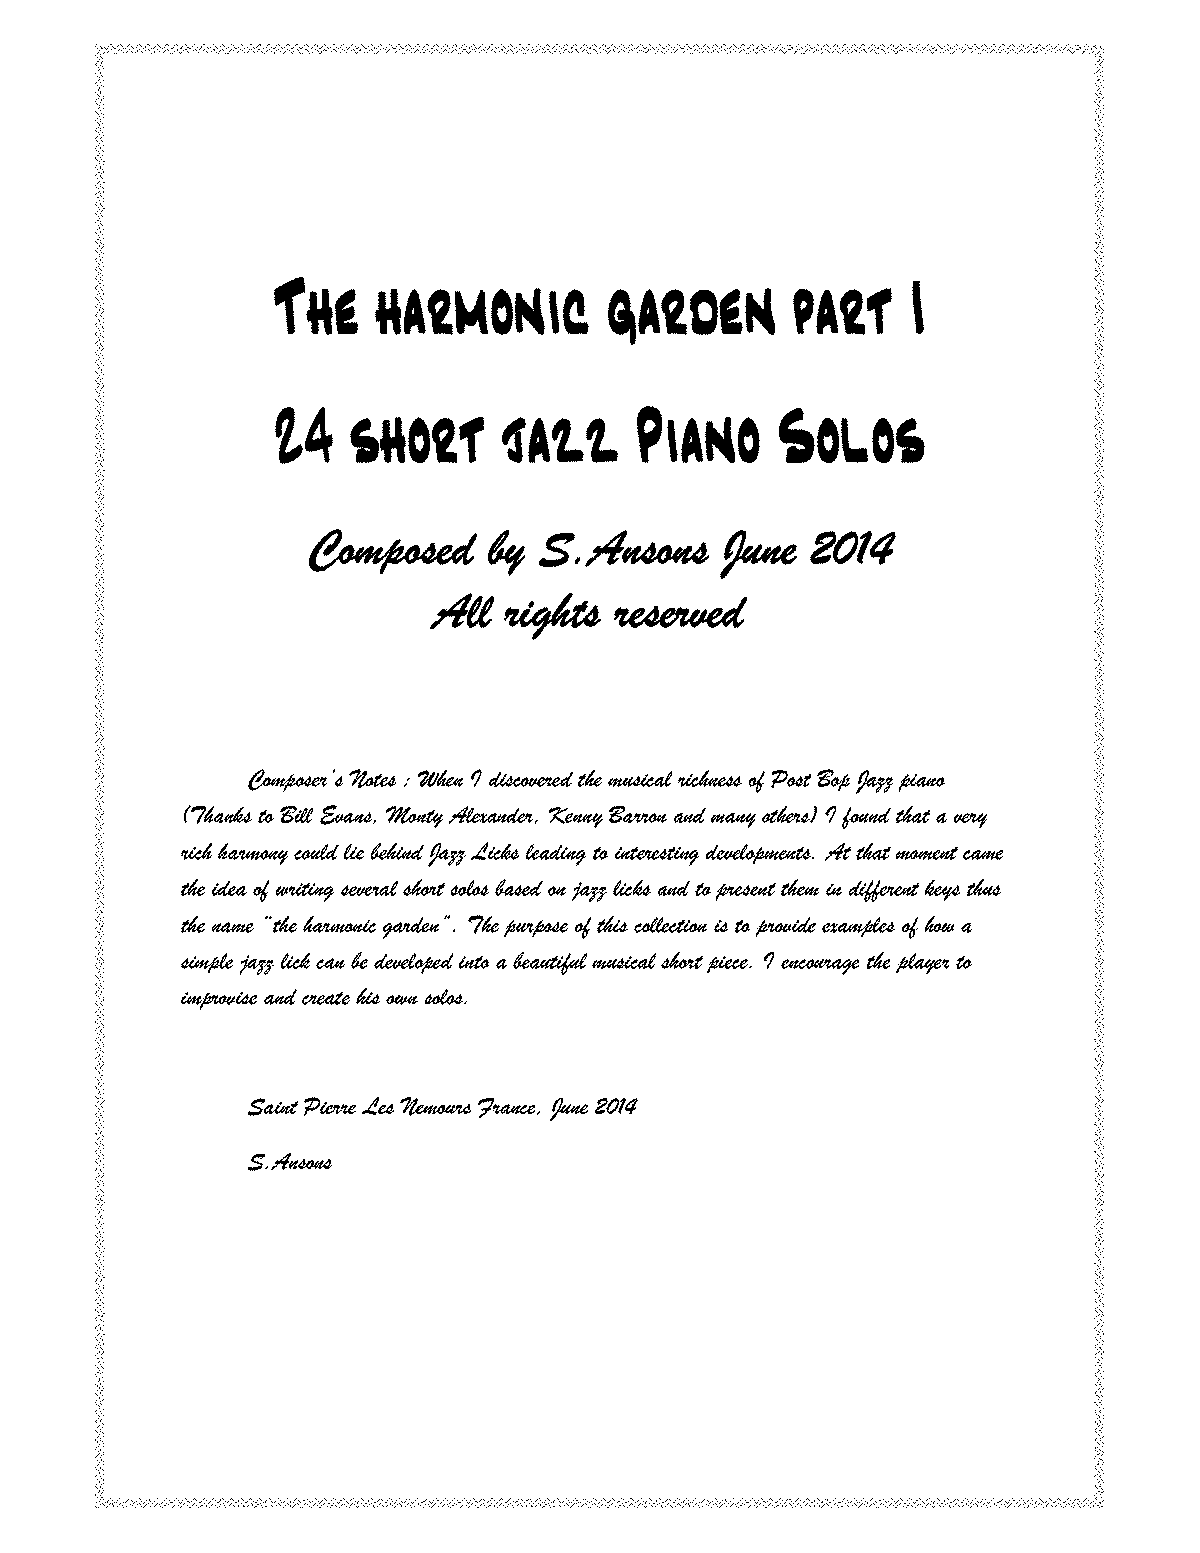 PMLP532776-the harmonic garden part I.pdf